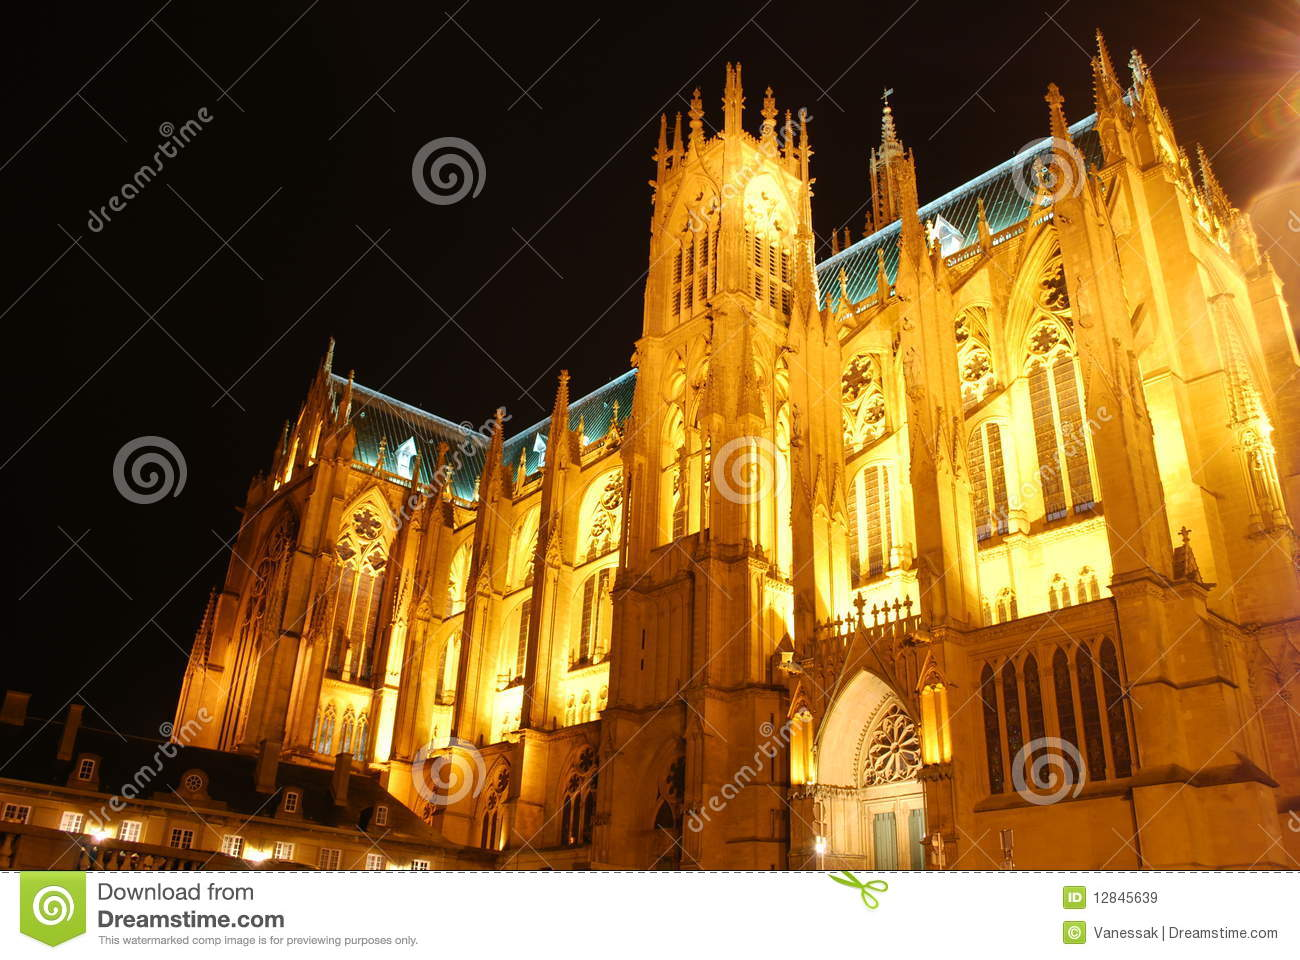 Cathedral of metz france royalty free stock images for Exclusive metz